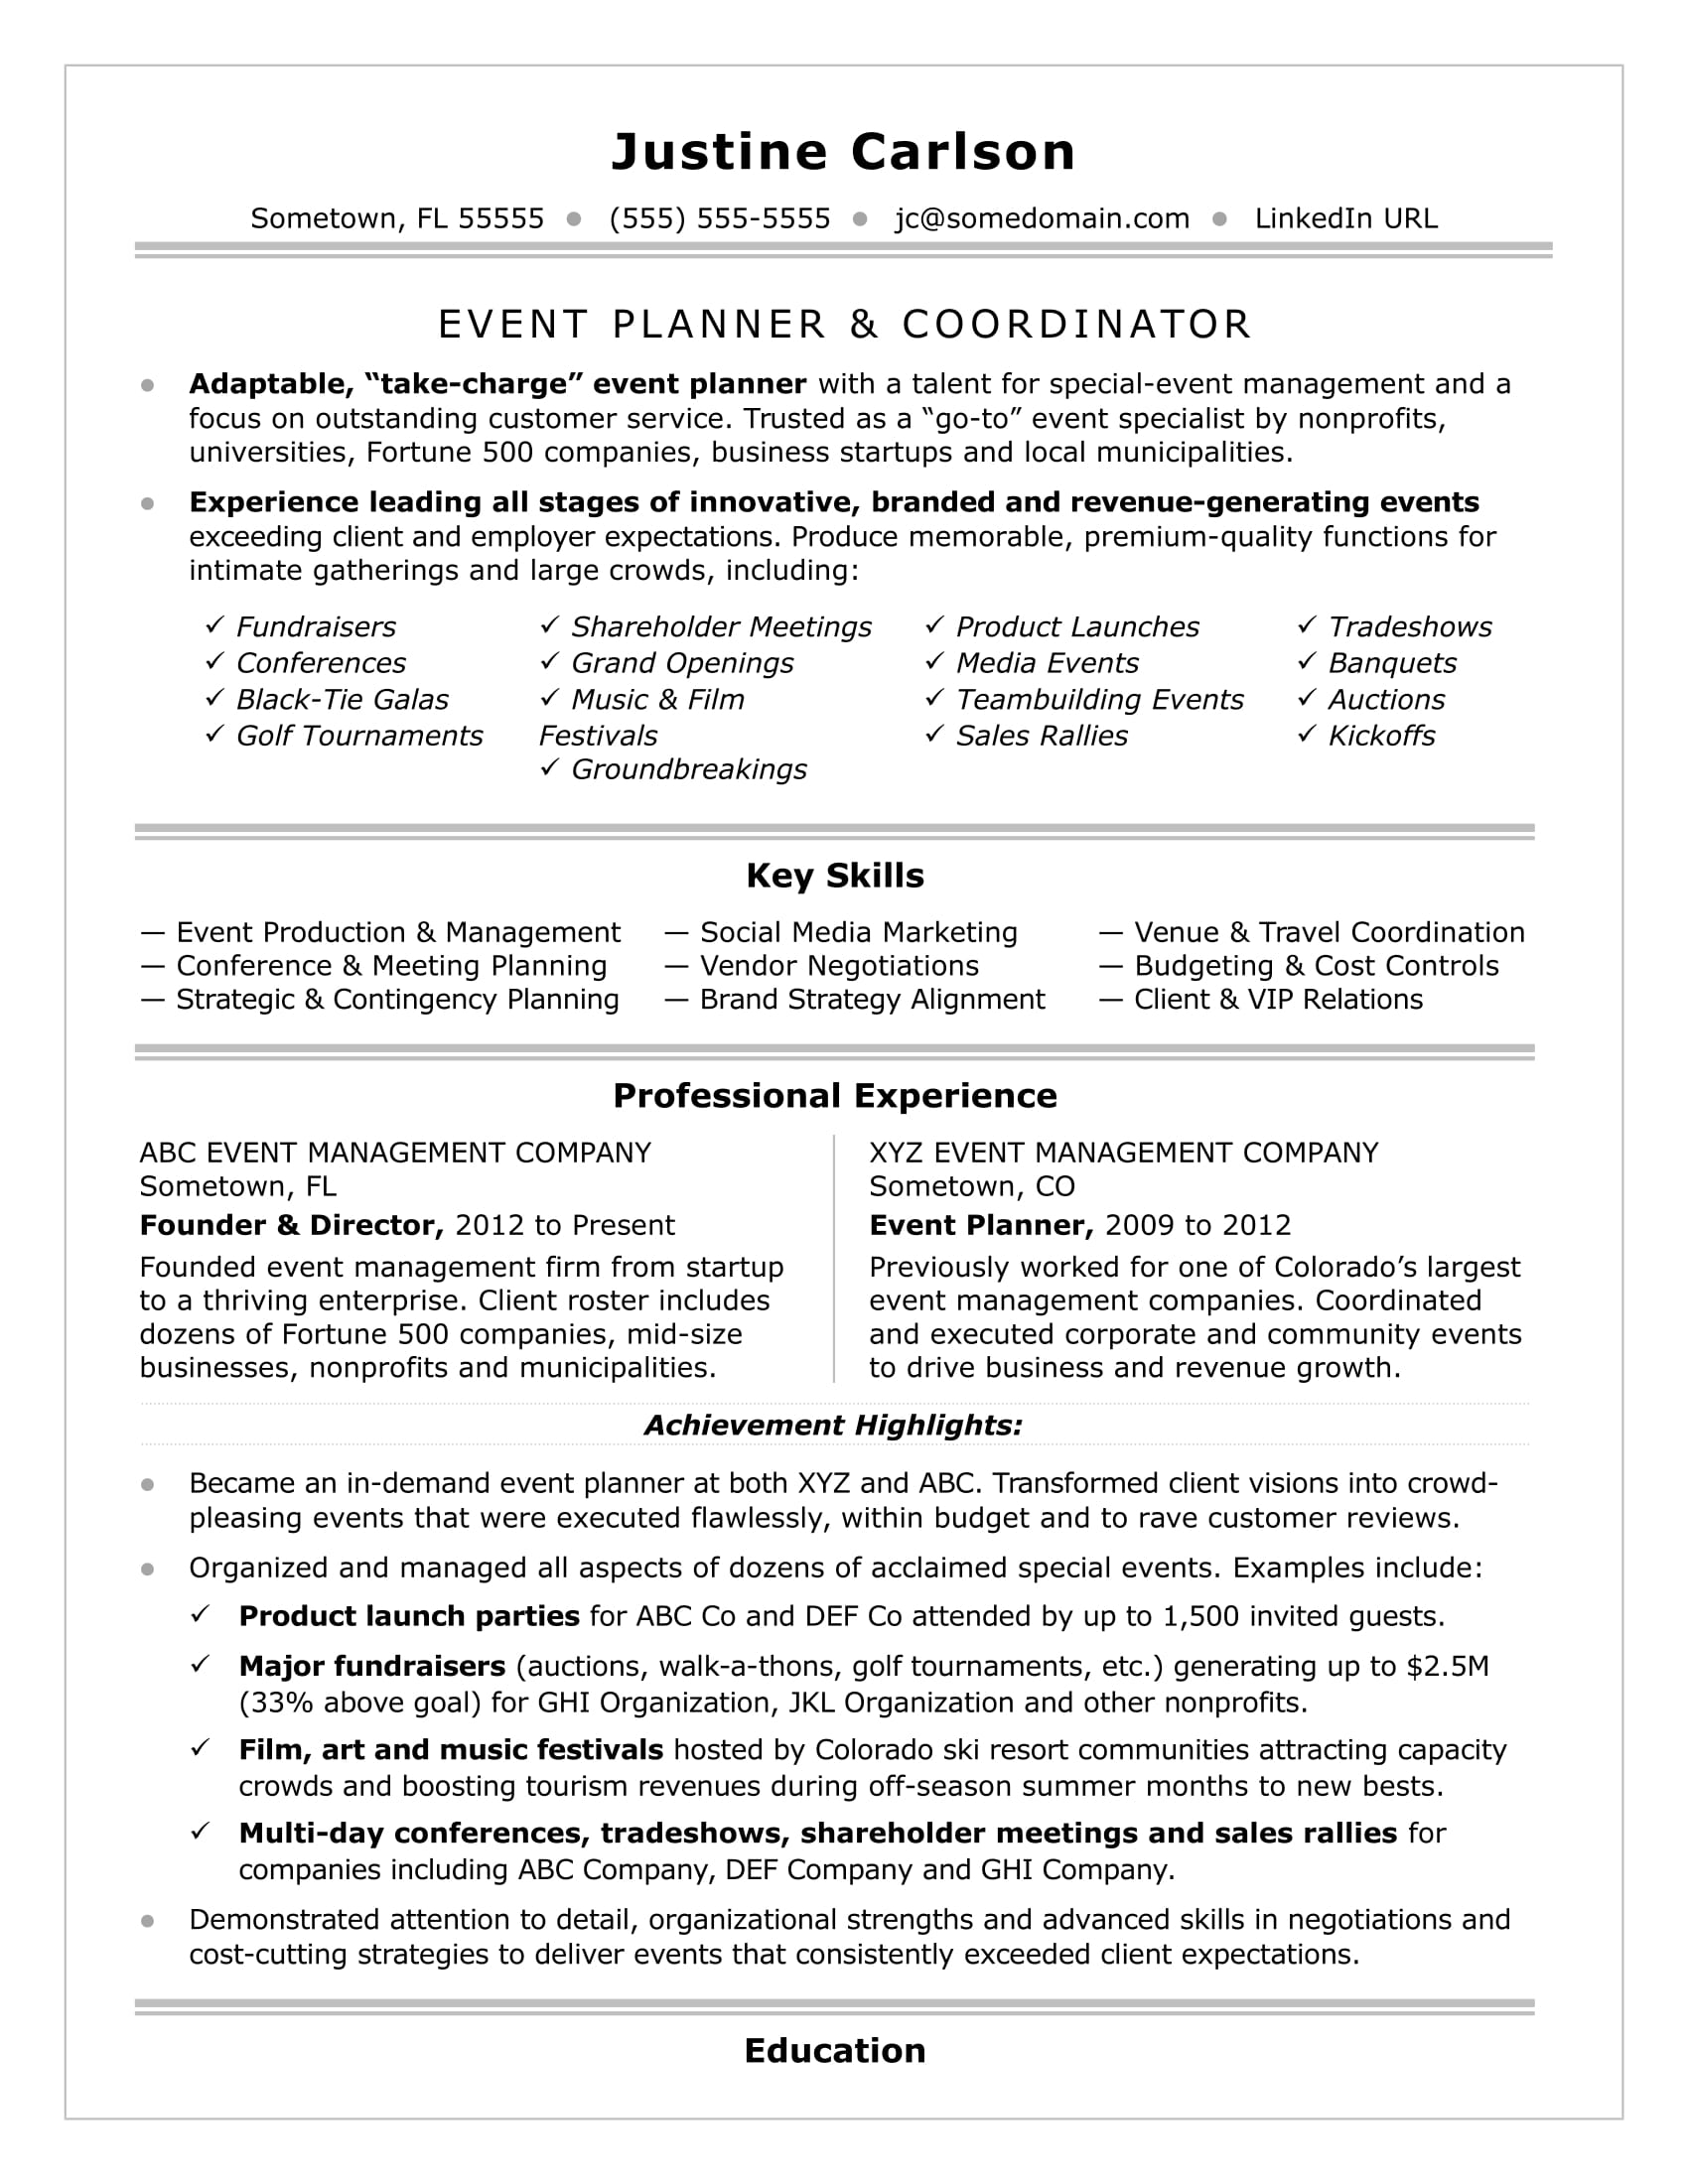 resume Conference Coordinator Resume event coordinator resume sample monster com sample